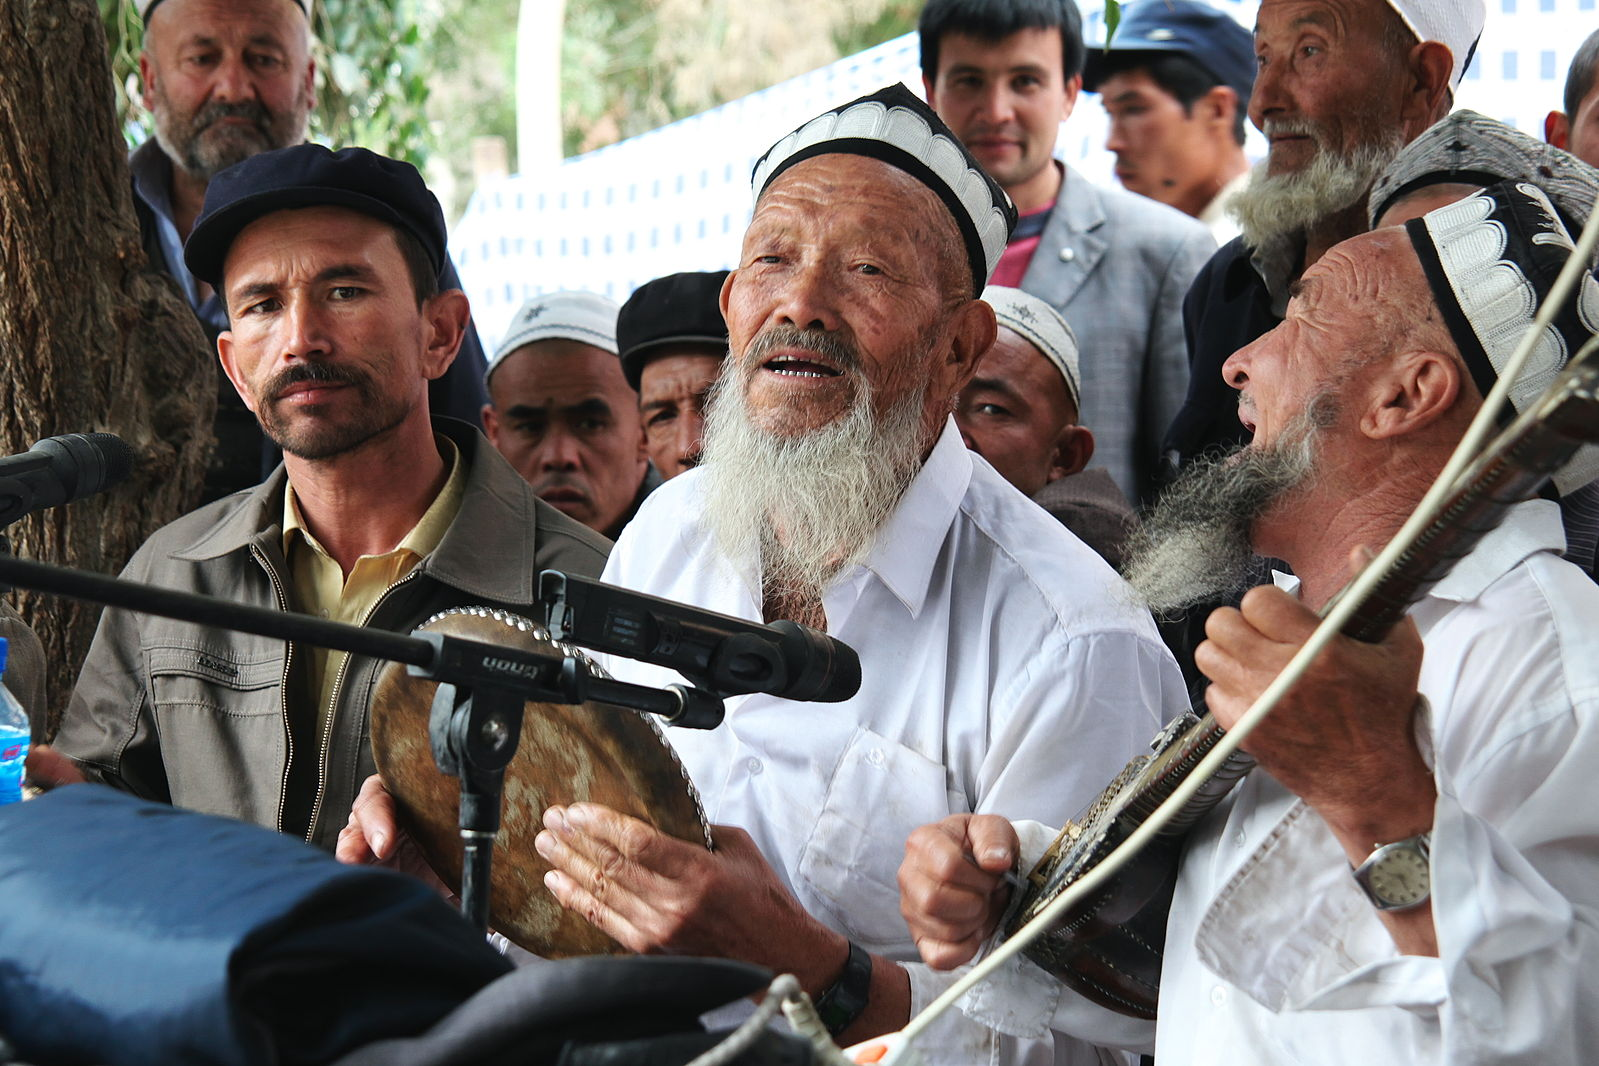 Chinese Uighur Muslim musicians performing for Meshrep, a traditional entertainment of singing and dancing, in Yarkand County, Xinjiang Uyghur Autonomous Region, China. Photo by  Traveling Mipo .